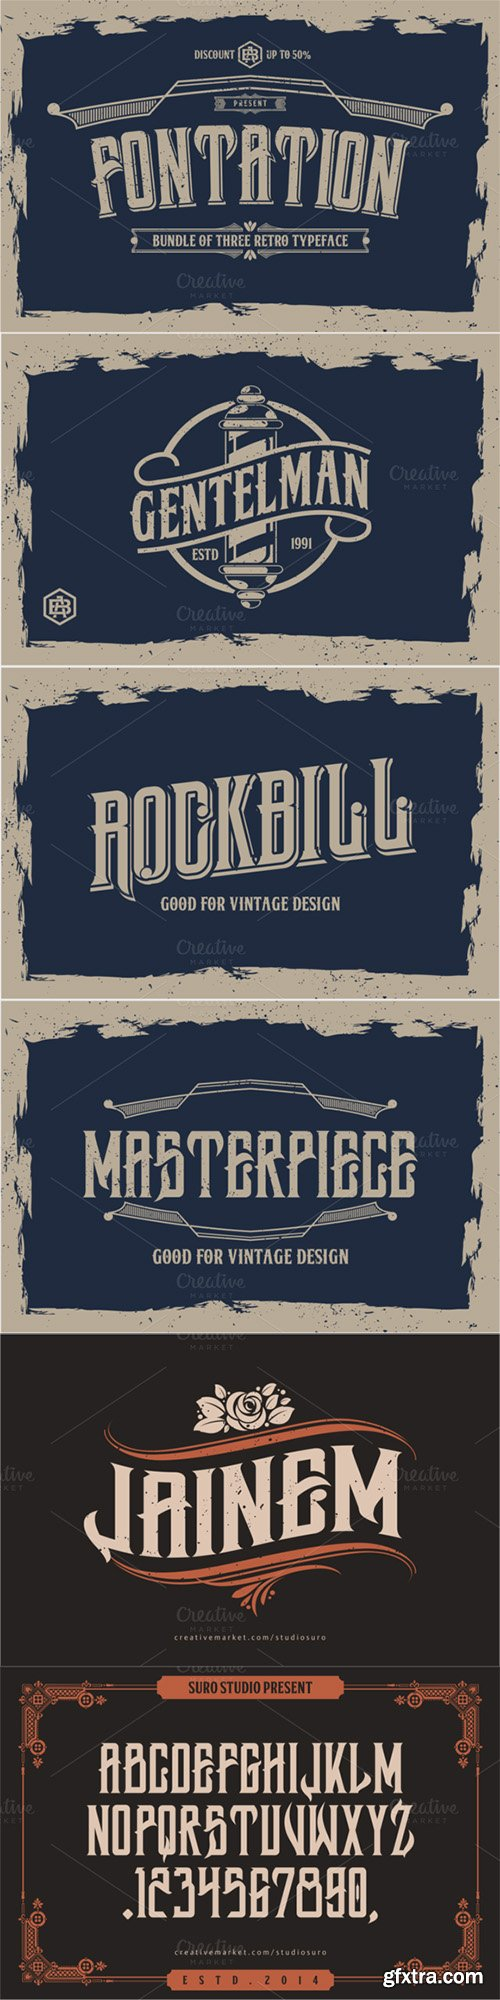 Creativemarket_FONTATION_Bundle_of_3_Retro_Typeface_299044_cap01